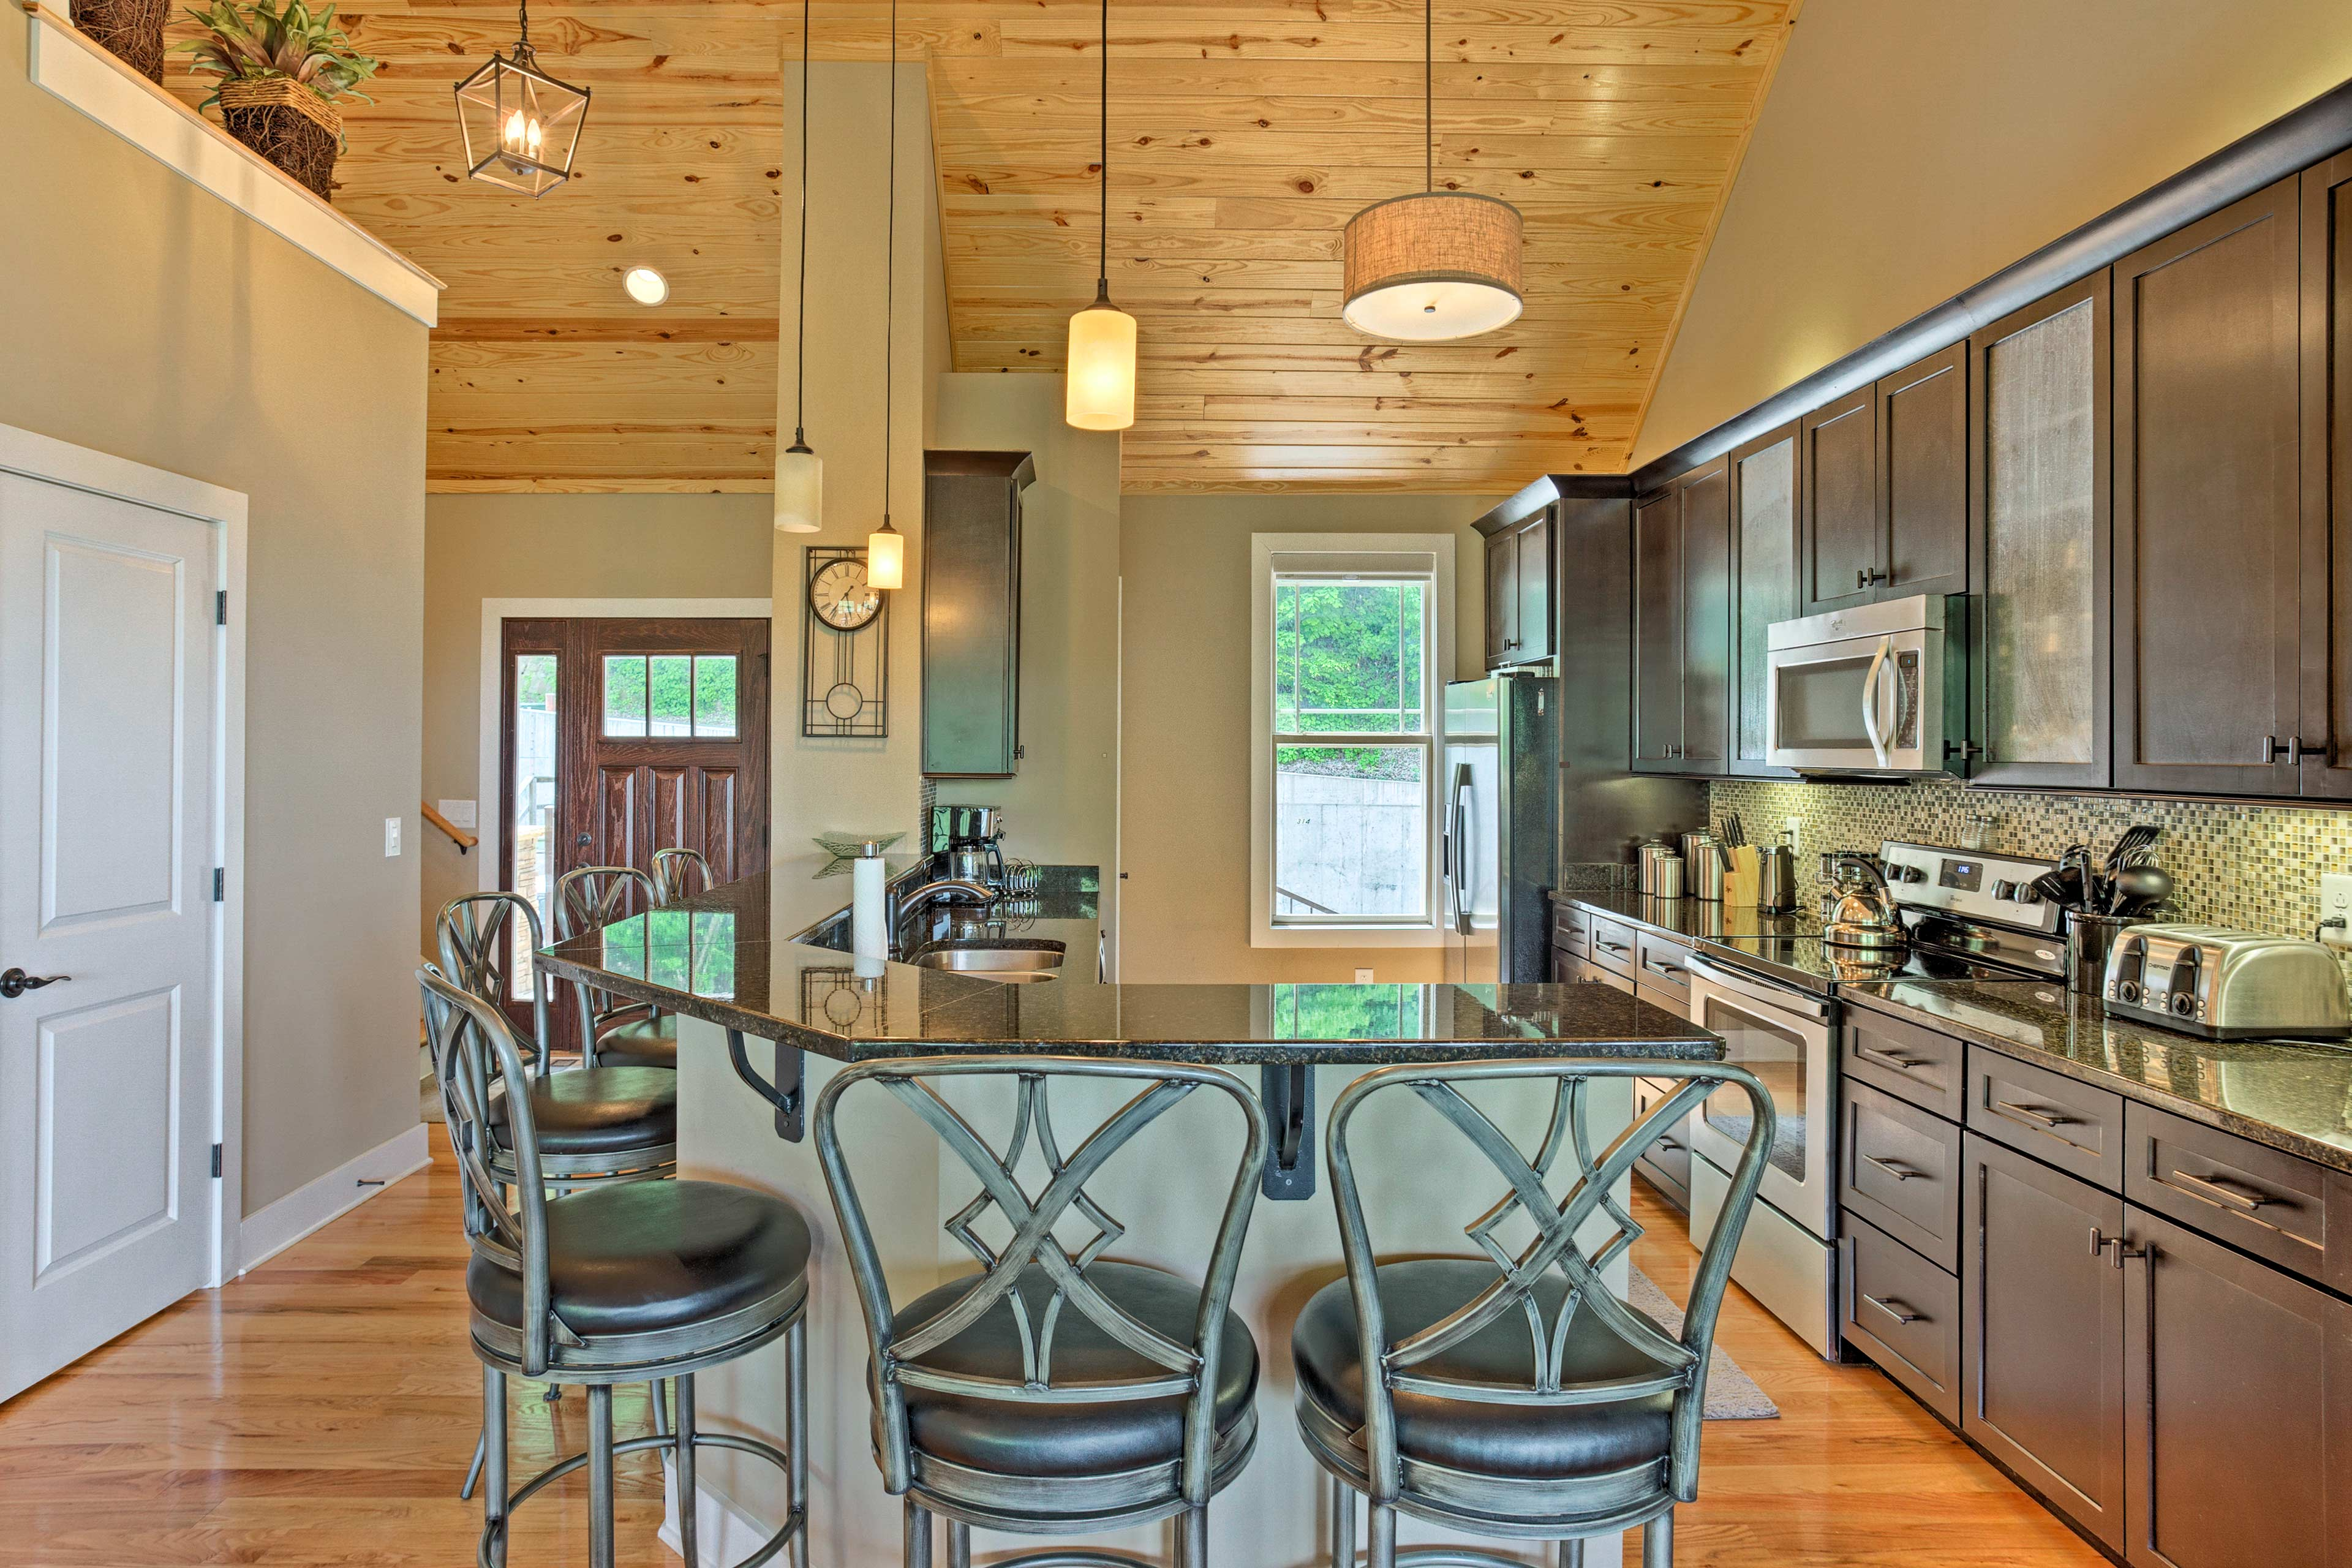 Hardwood floors and vaulted ceilings flow throughout.